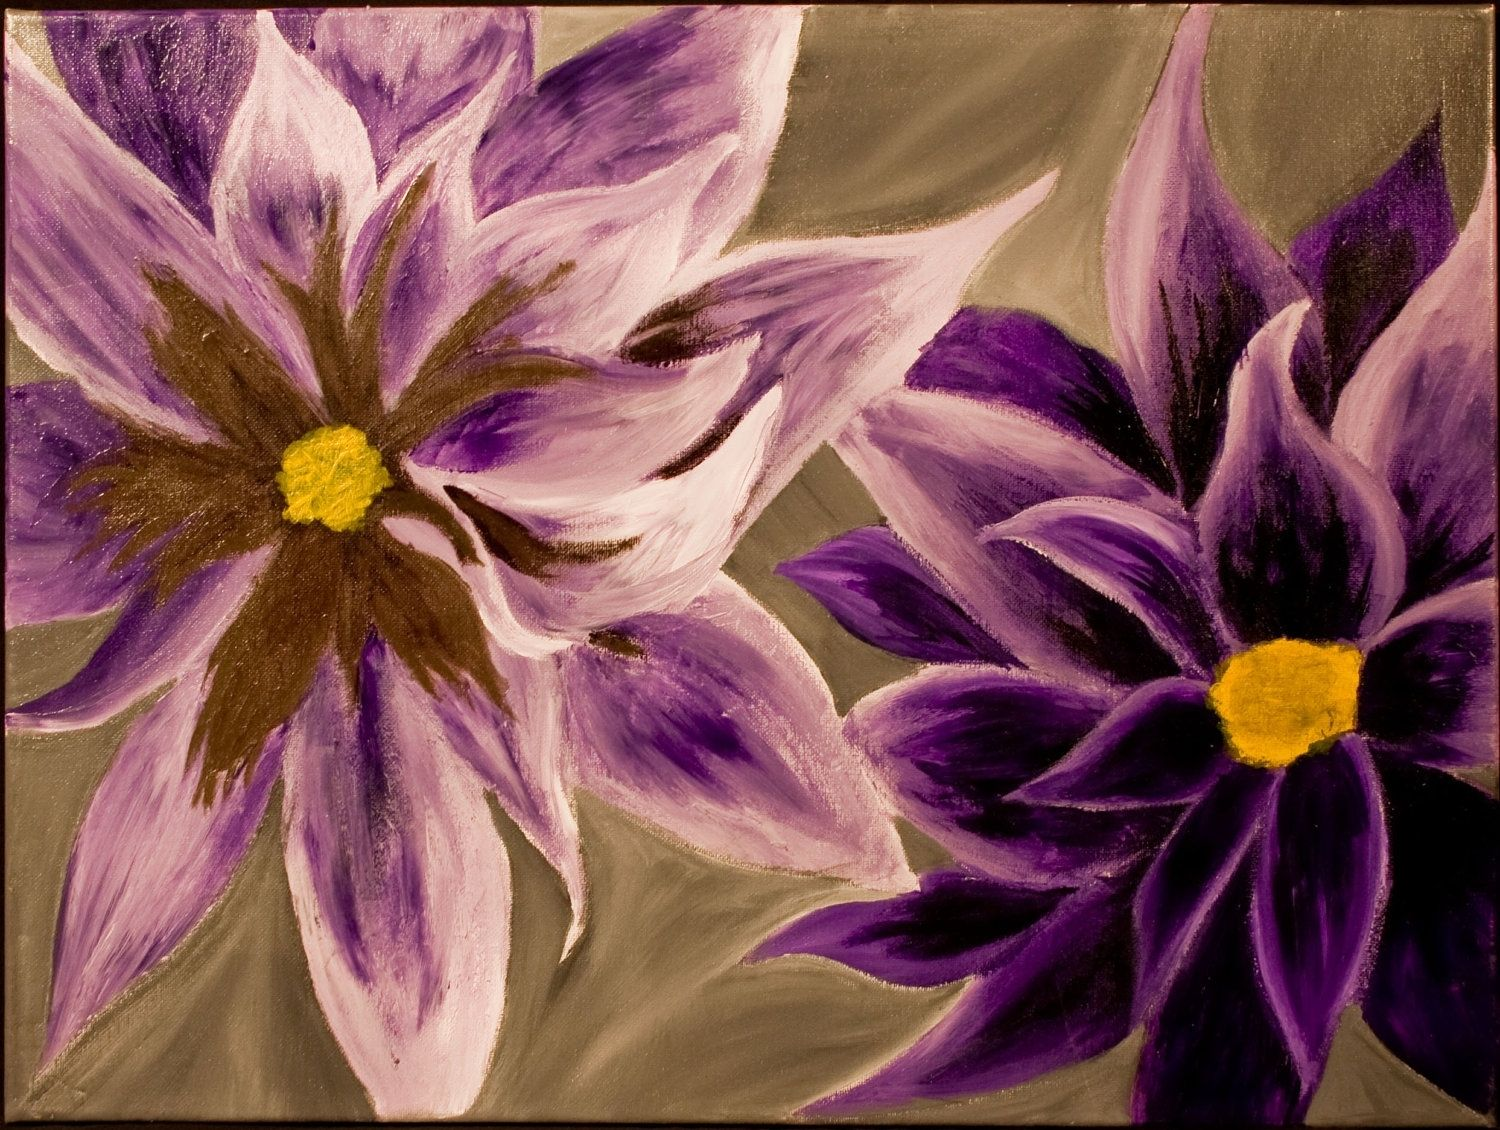 Handmade purple flowers 16x22in acrylic on canvas for Painting large flowers in acrylic